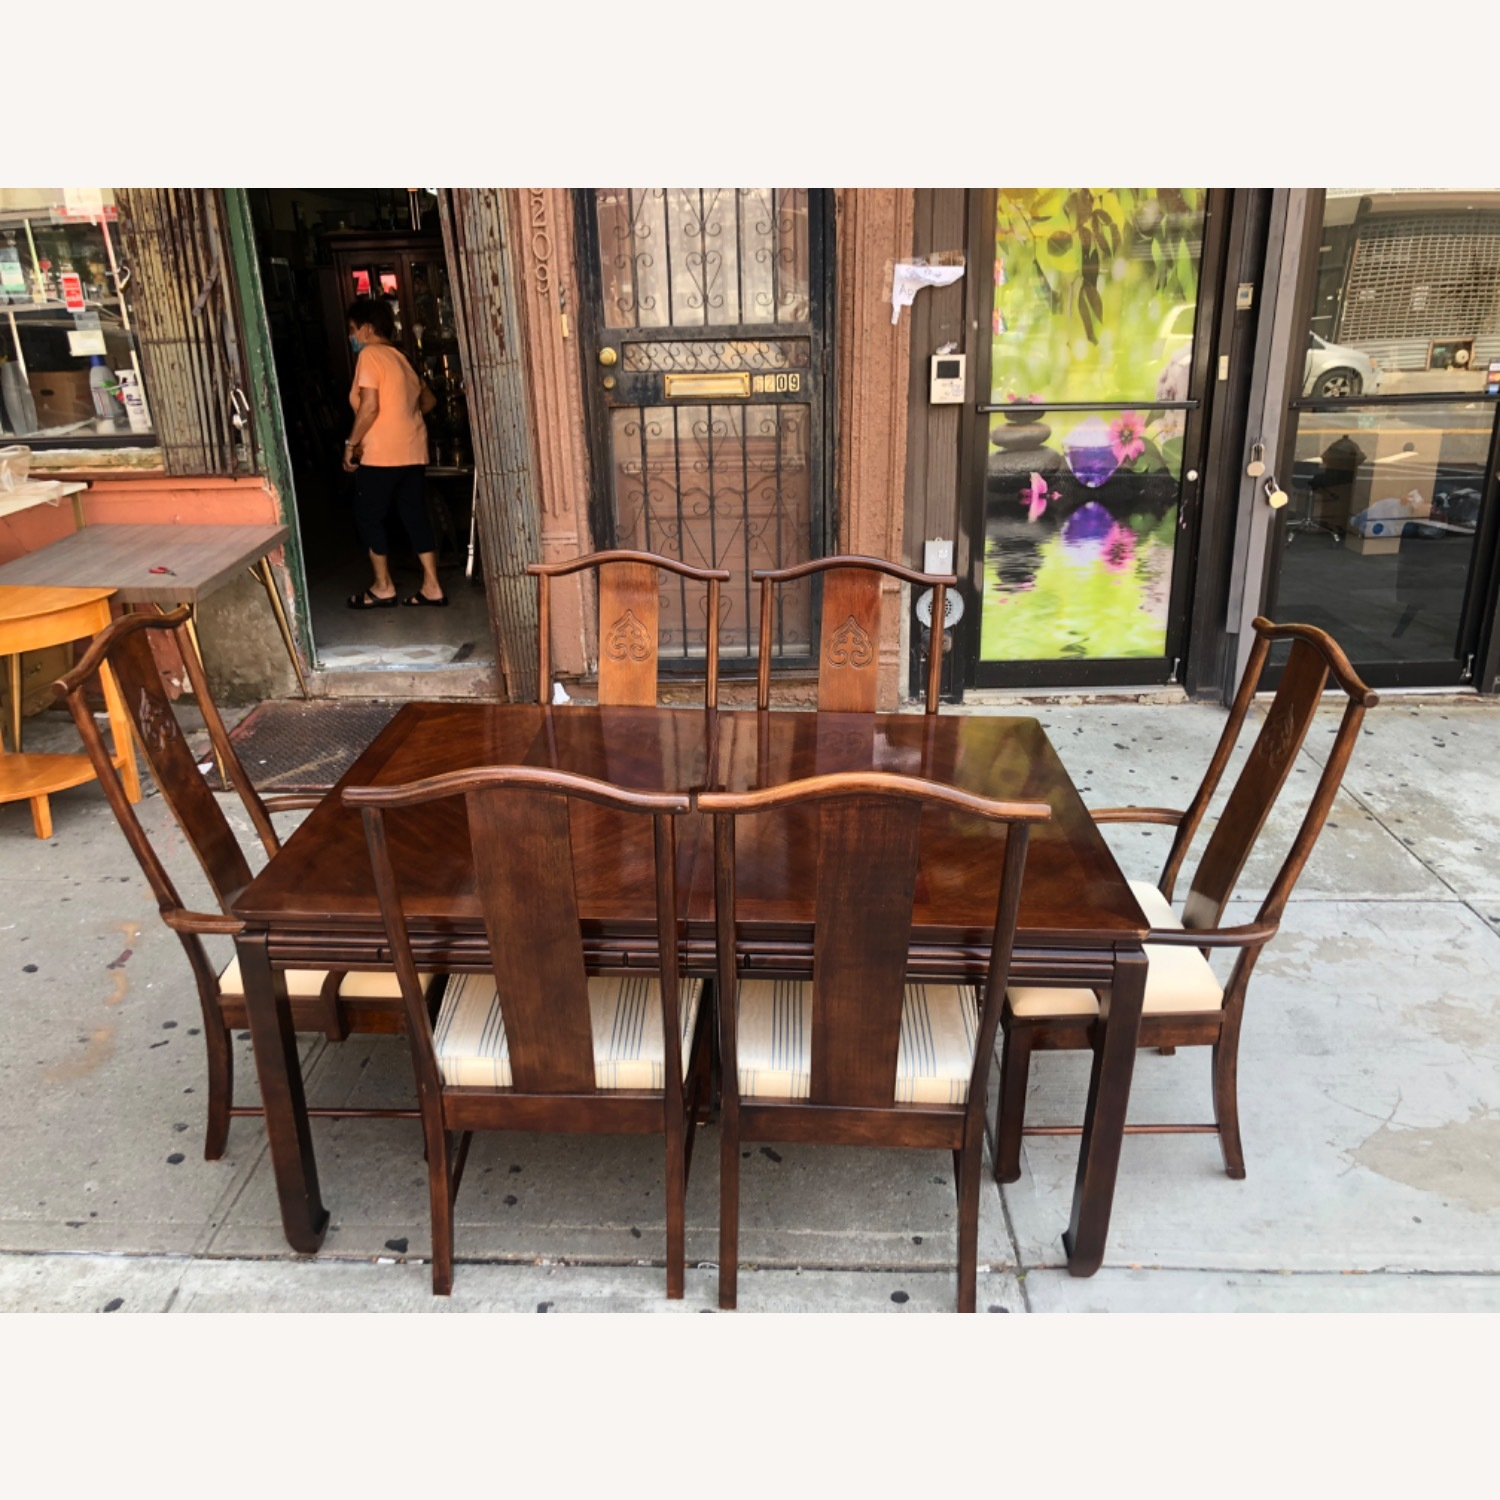 Vintage 1970s Table w/6 Chairs & 2 Extension - image-38